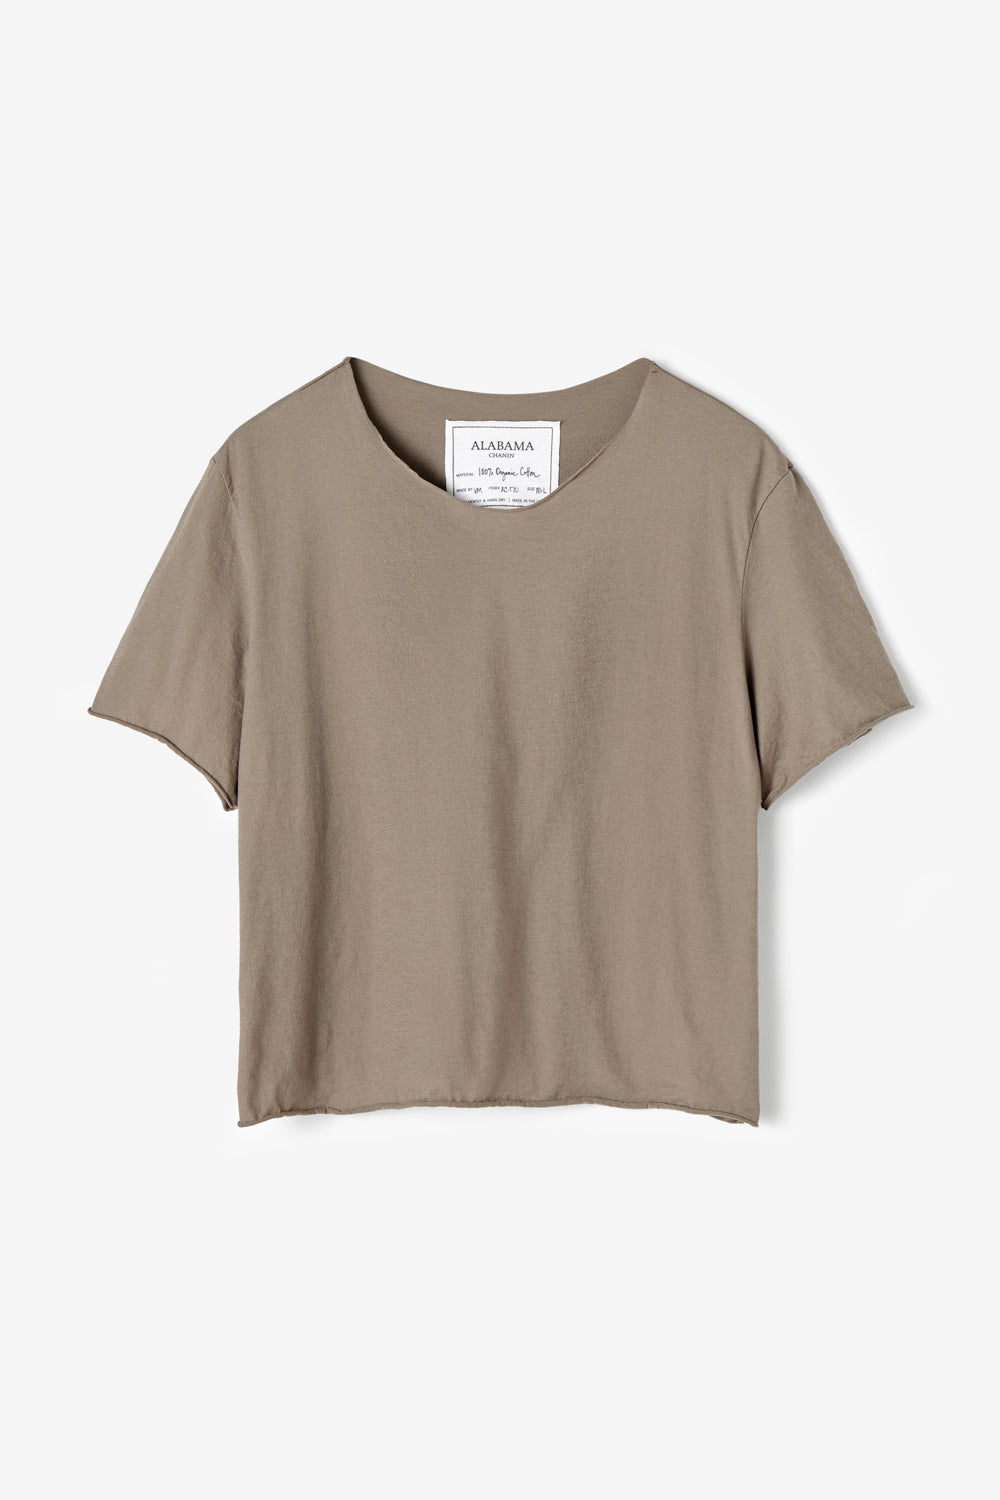 Alabama Chanin 100% Organic Cotton Top with Boat Neck in Brown